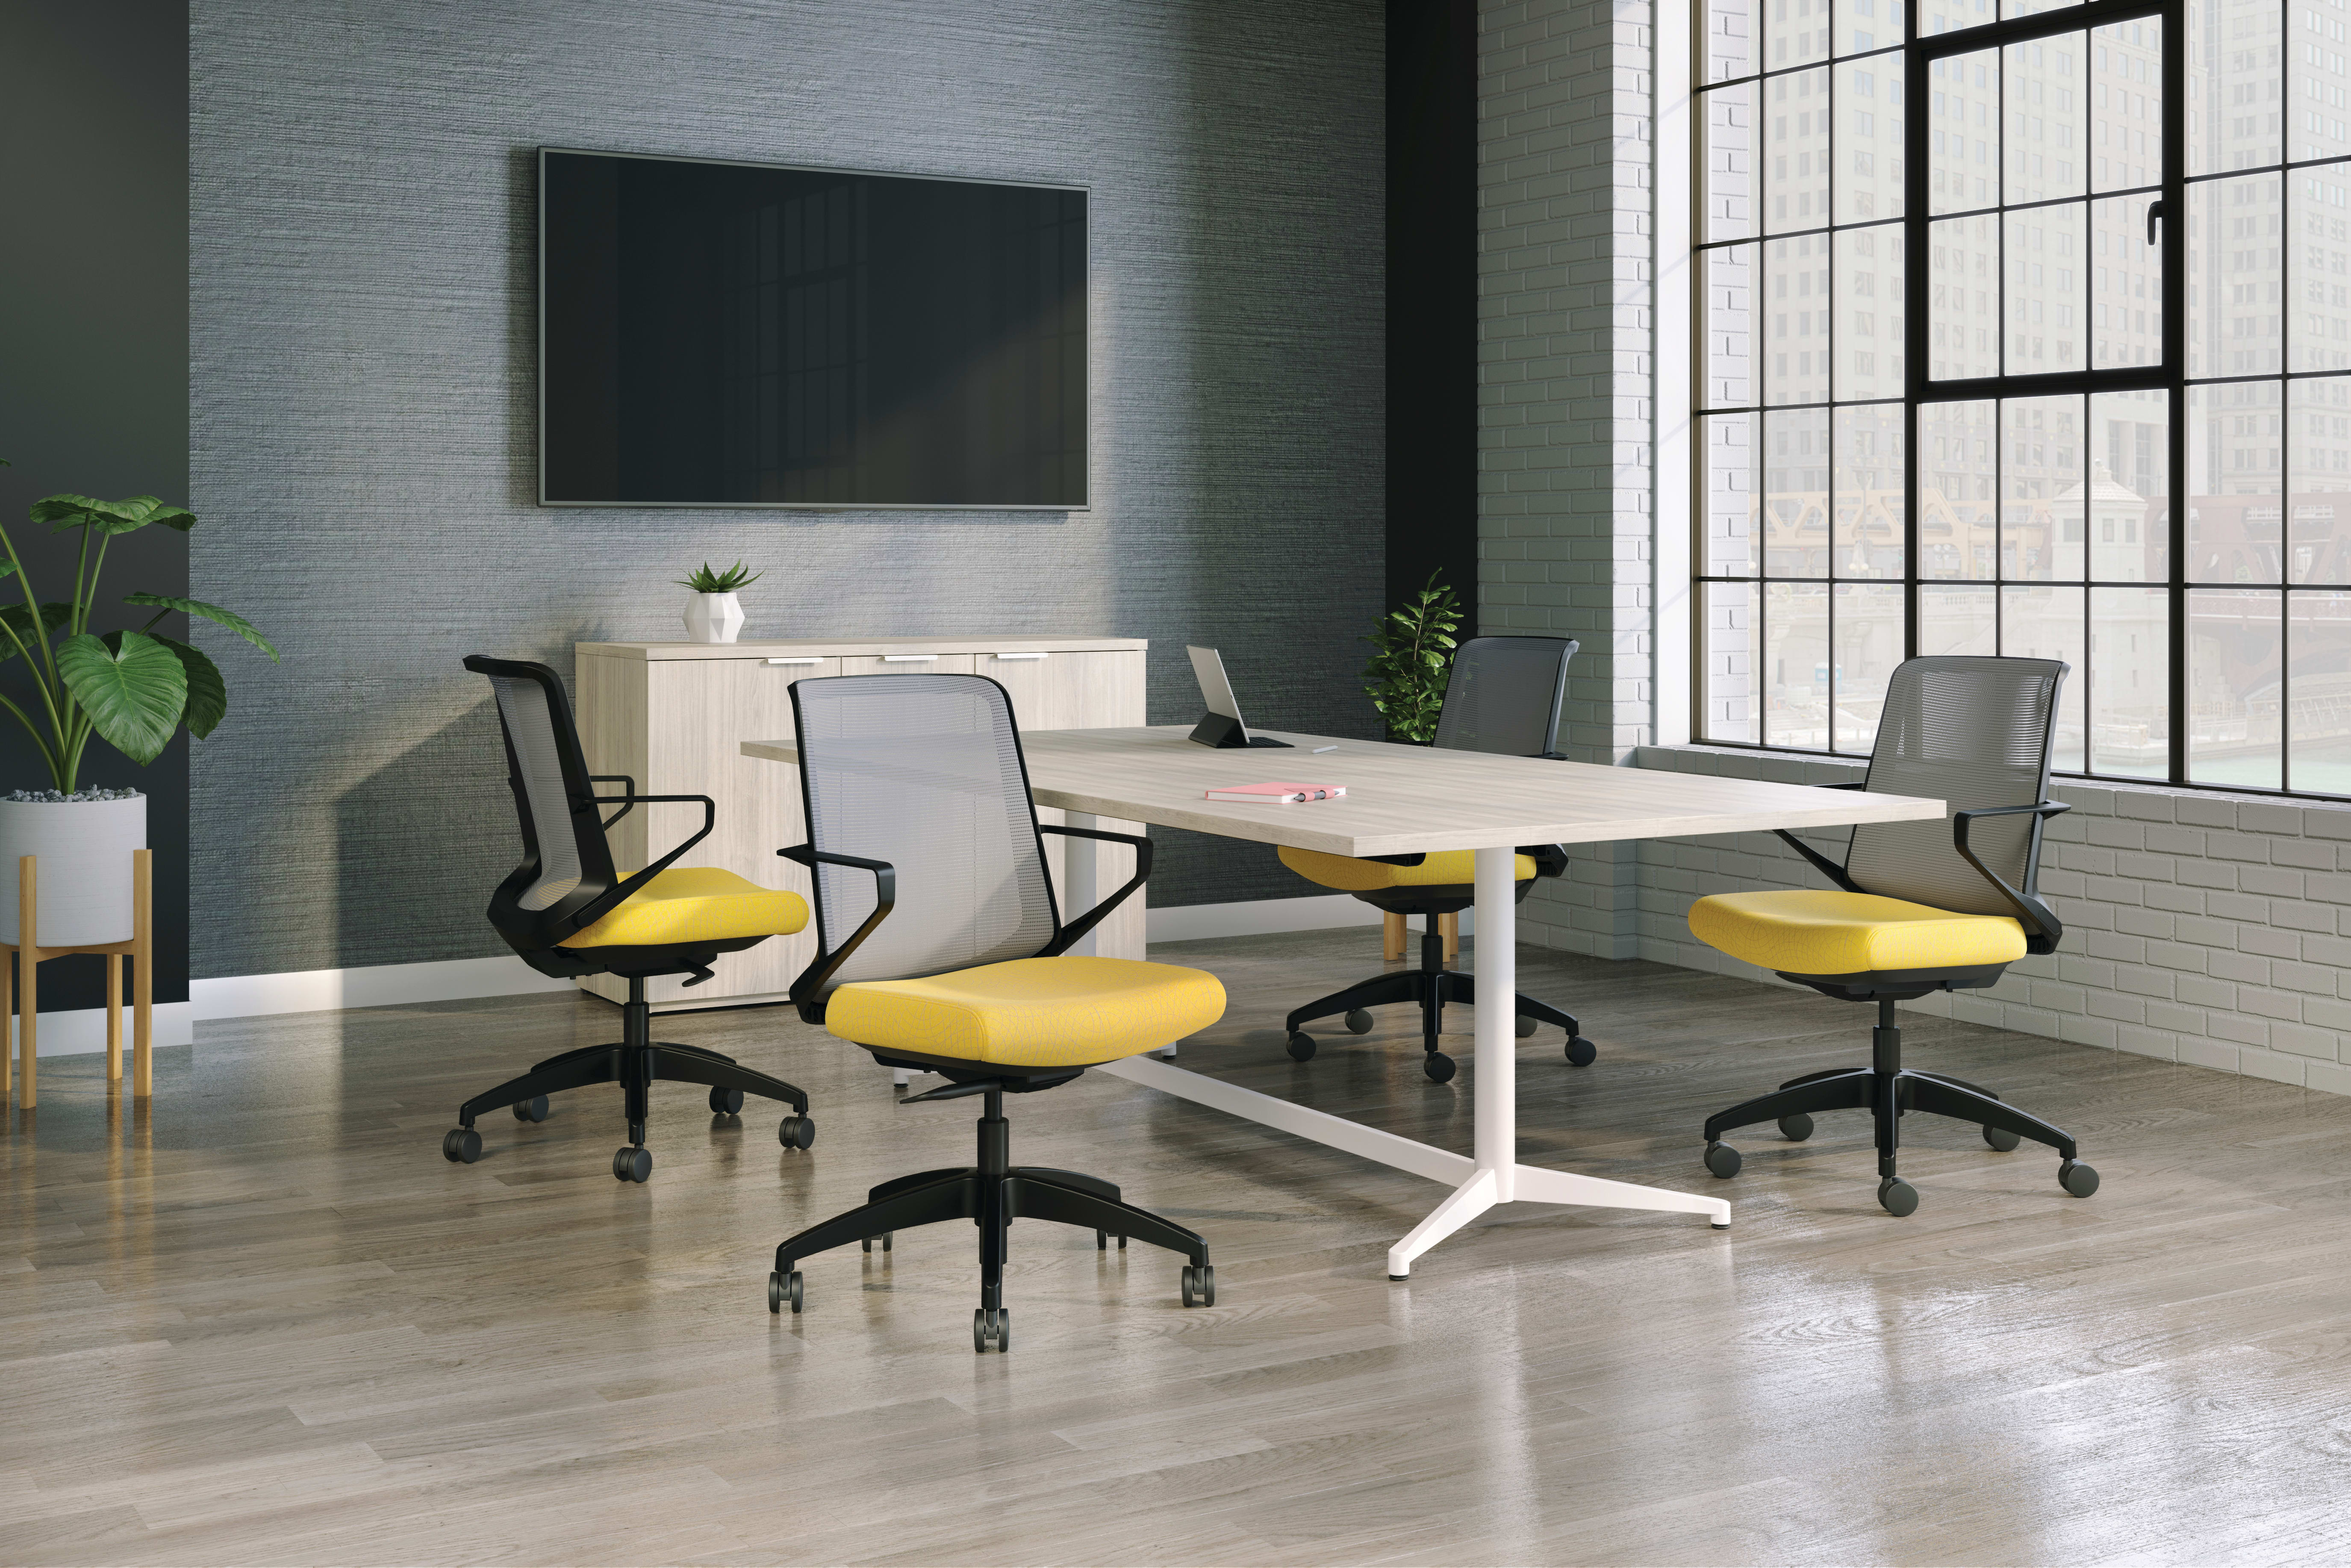 Cliq chairs with Preside conference table and credenza.